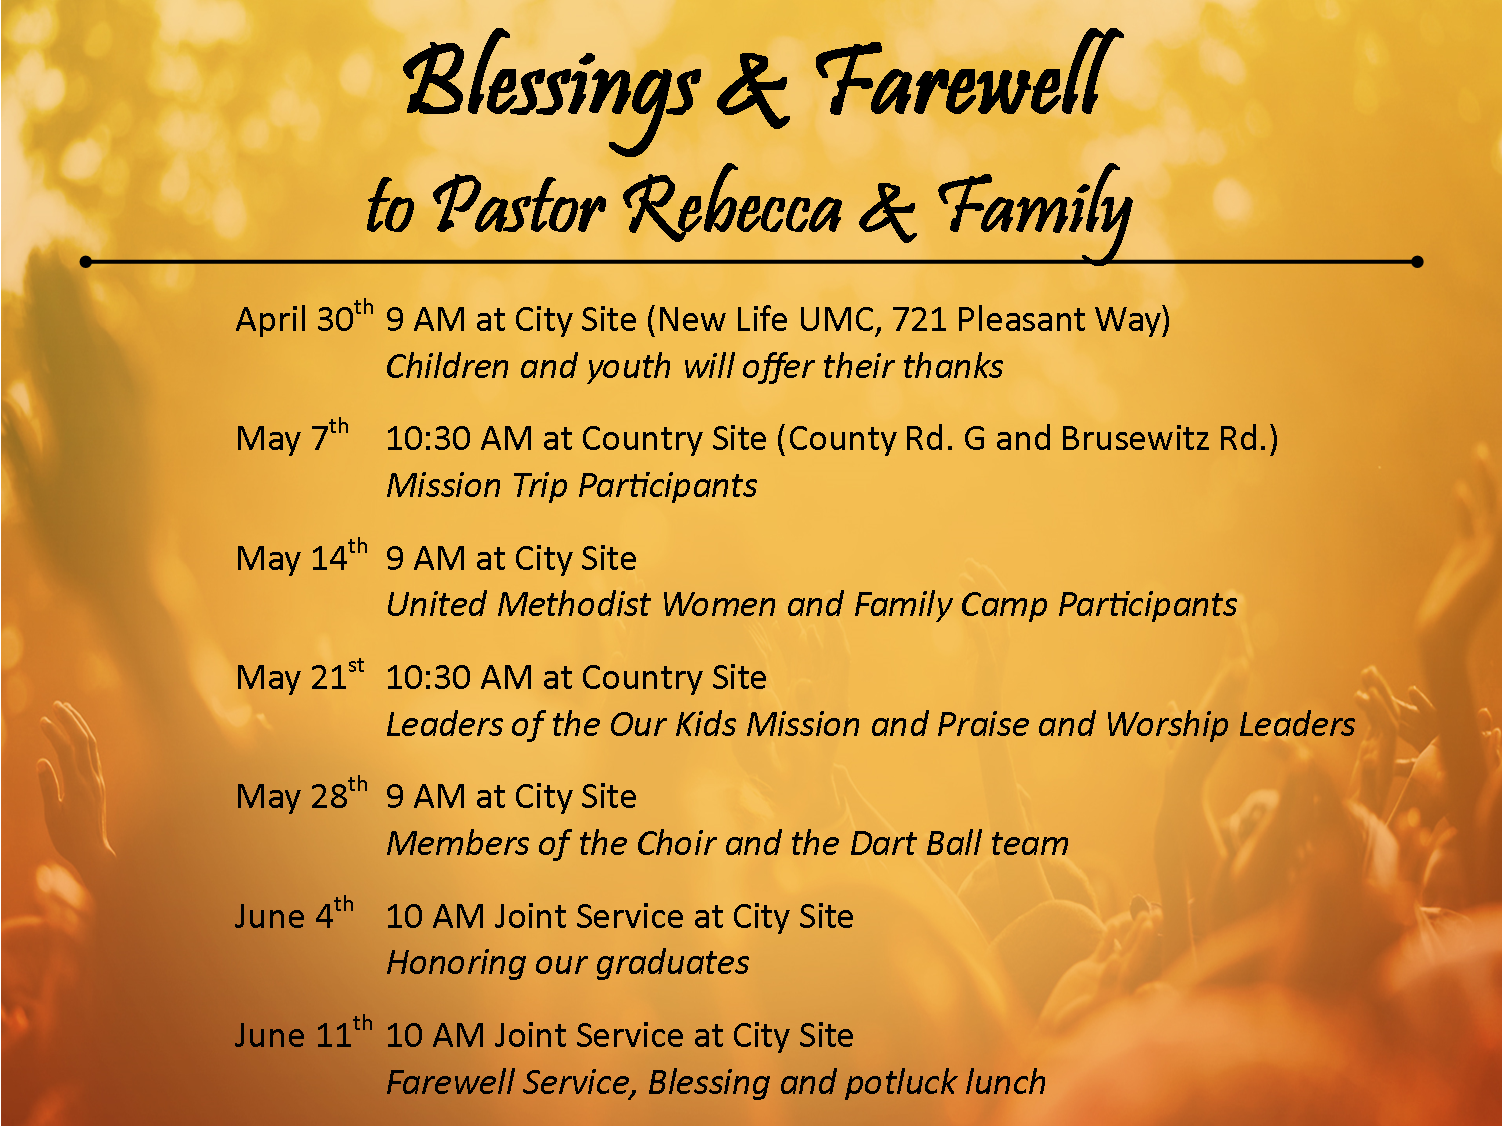 Blessings & Farewell – New Life United Methodist Church